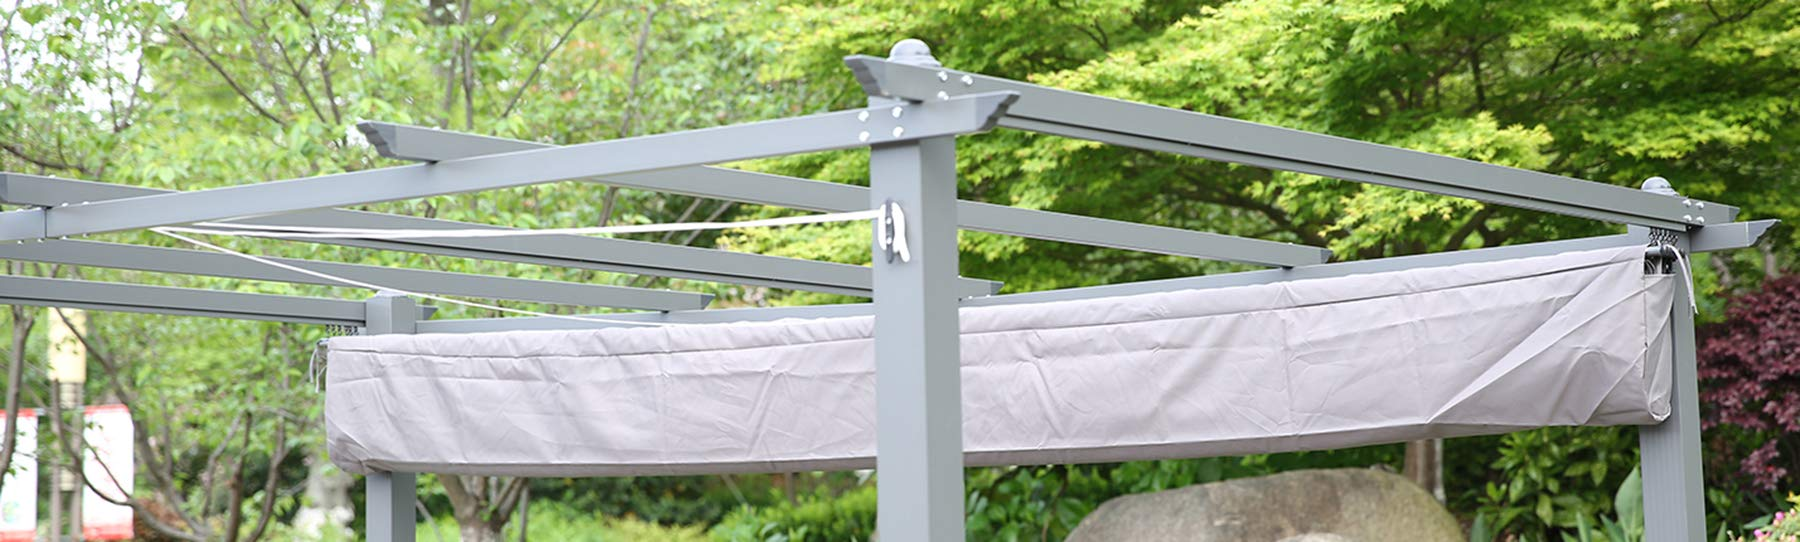 Angel Living - Funda de Protectora para la Lona del Techo de 3x4m pérgola para jardín o Patio, Color Gris: Amazon.es: Jardín